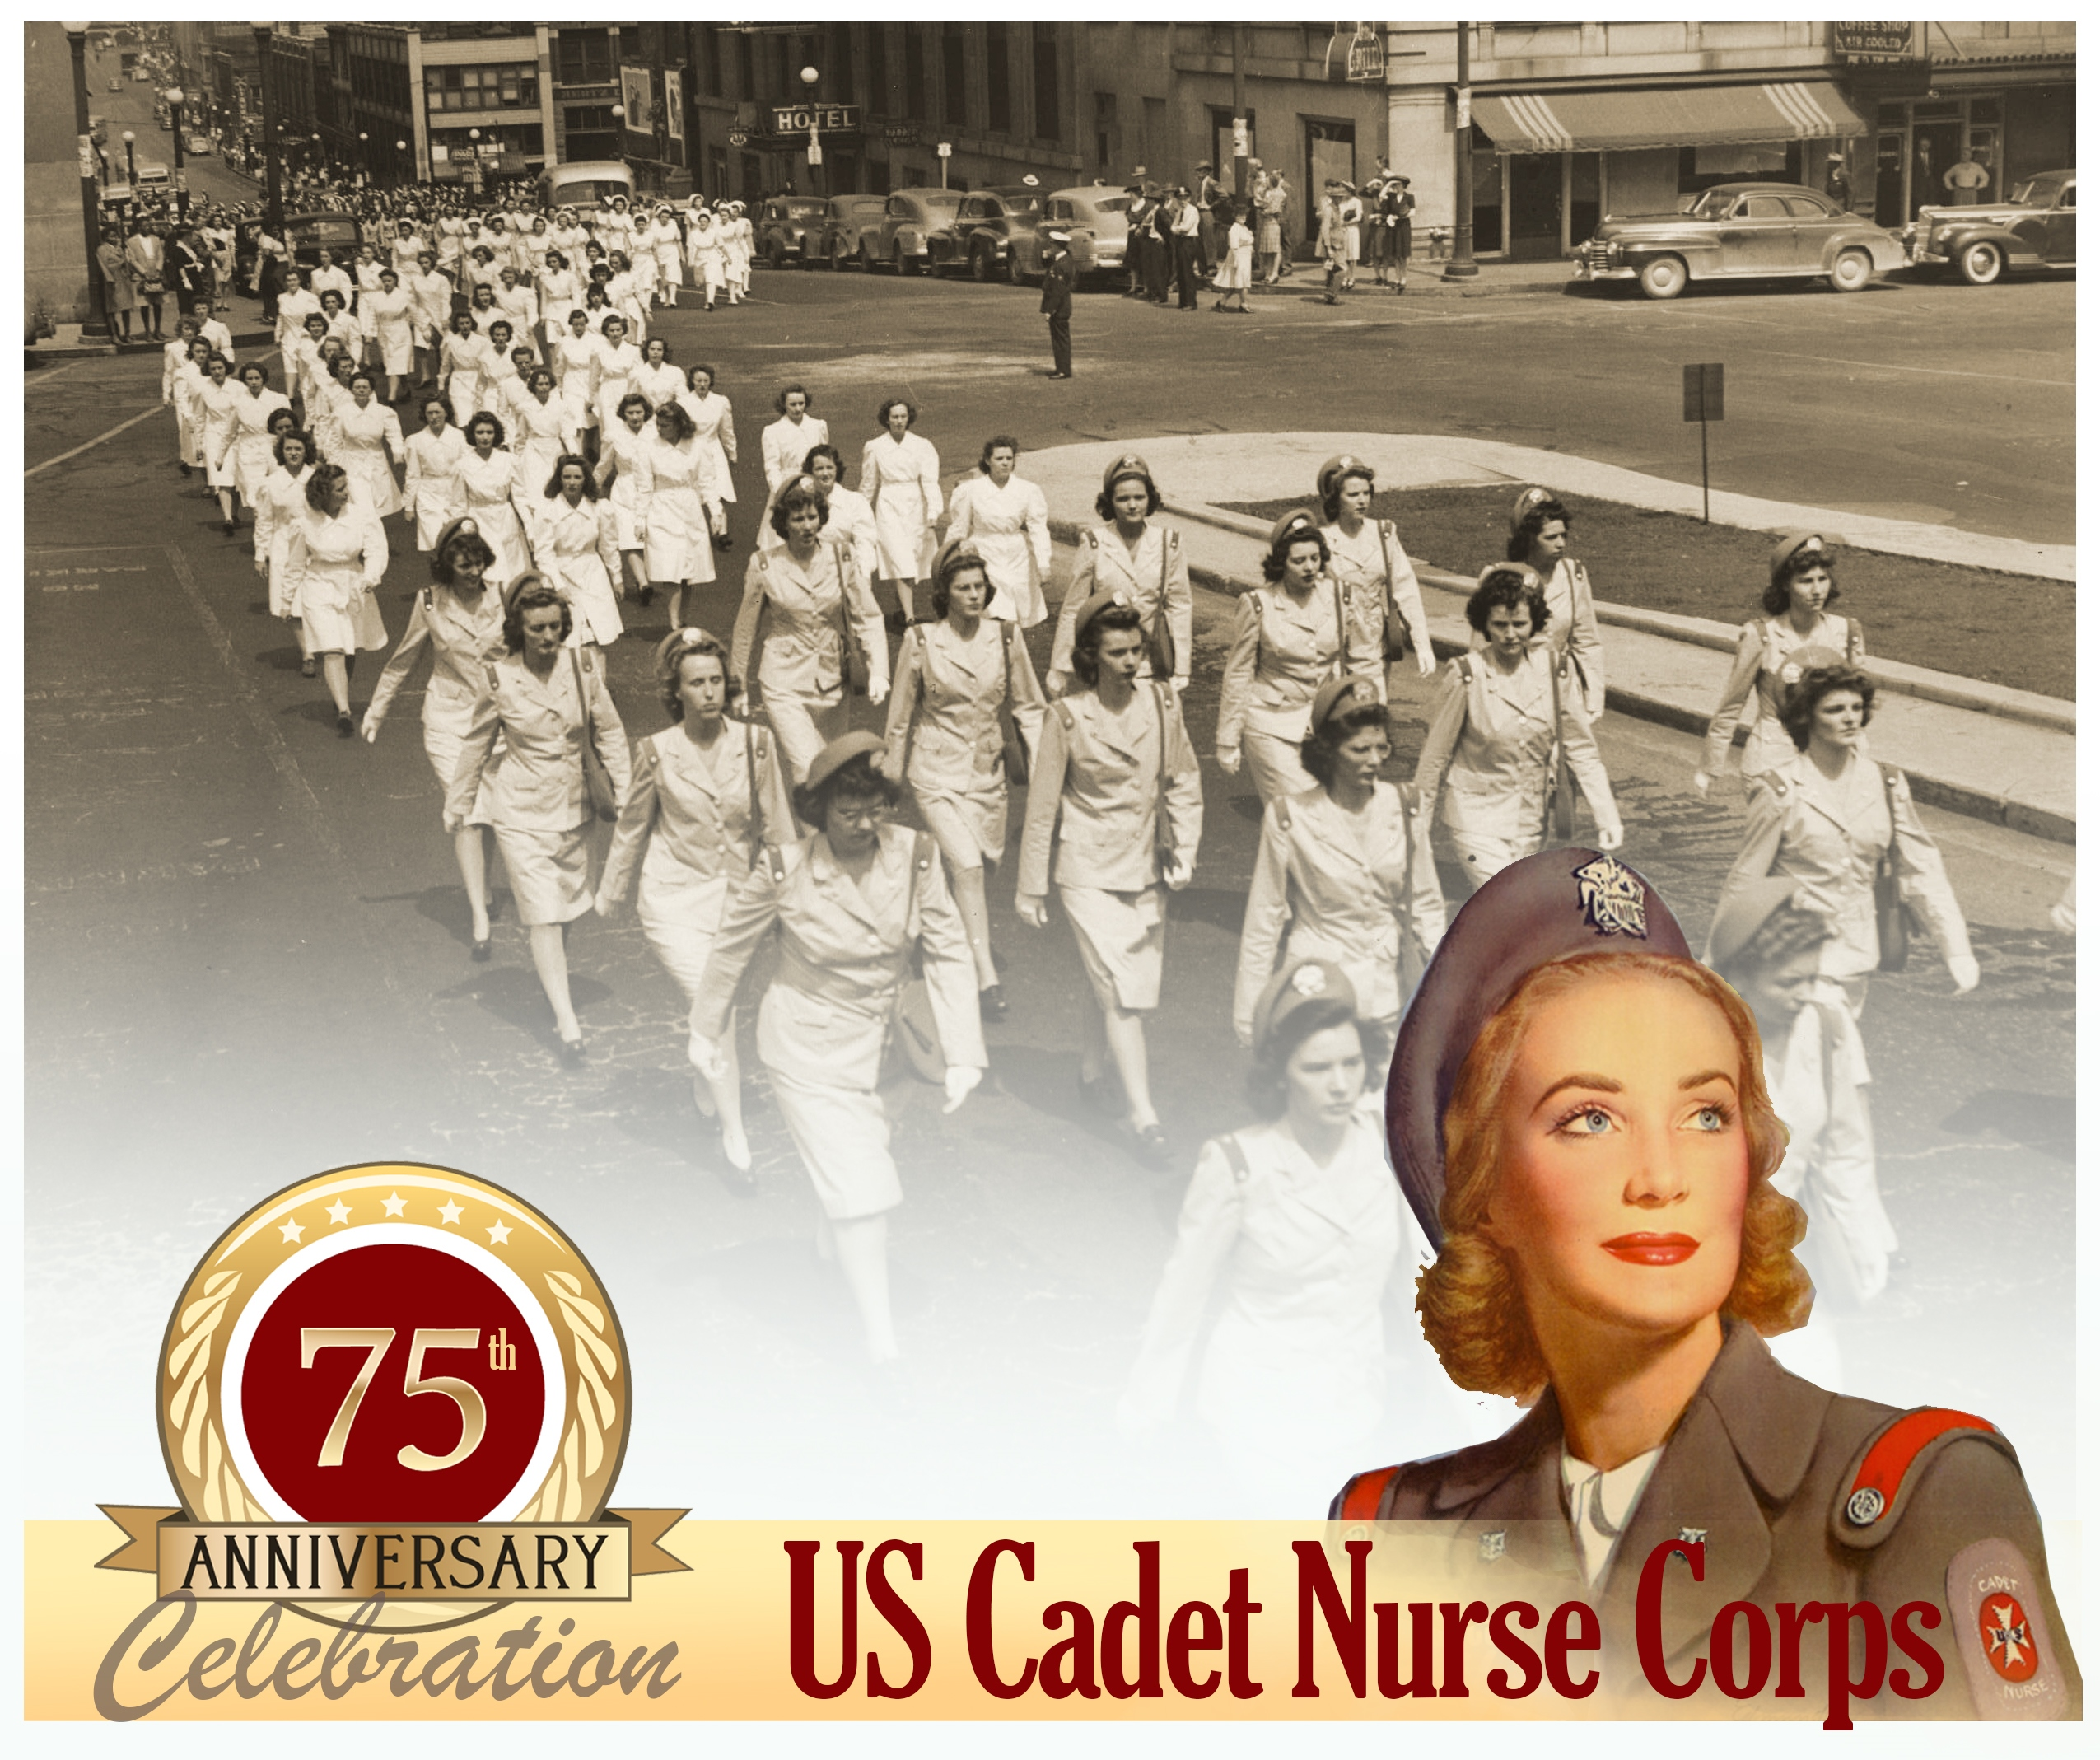 US Cadet Nurse Corps Recognition